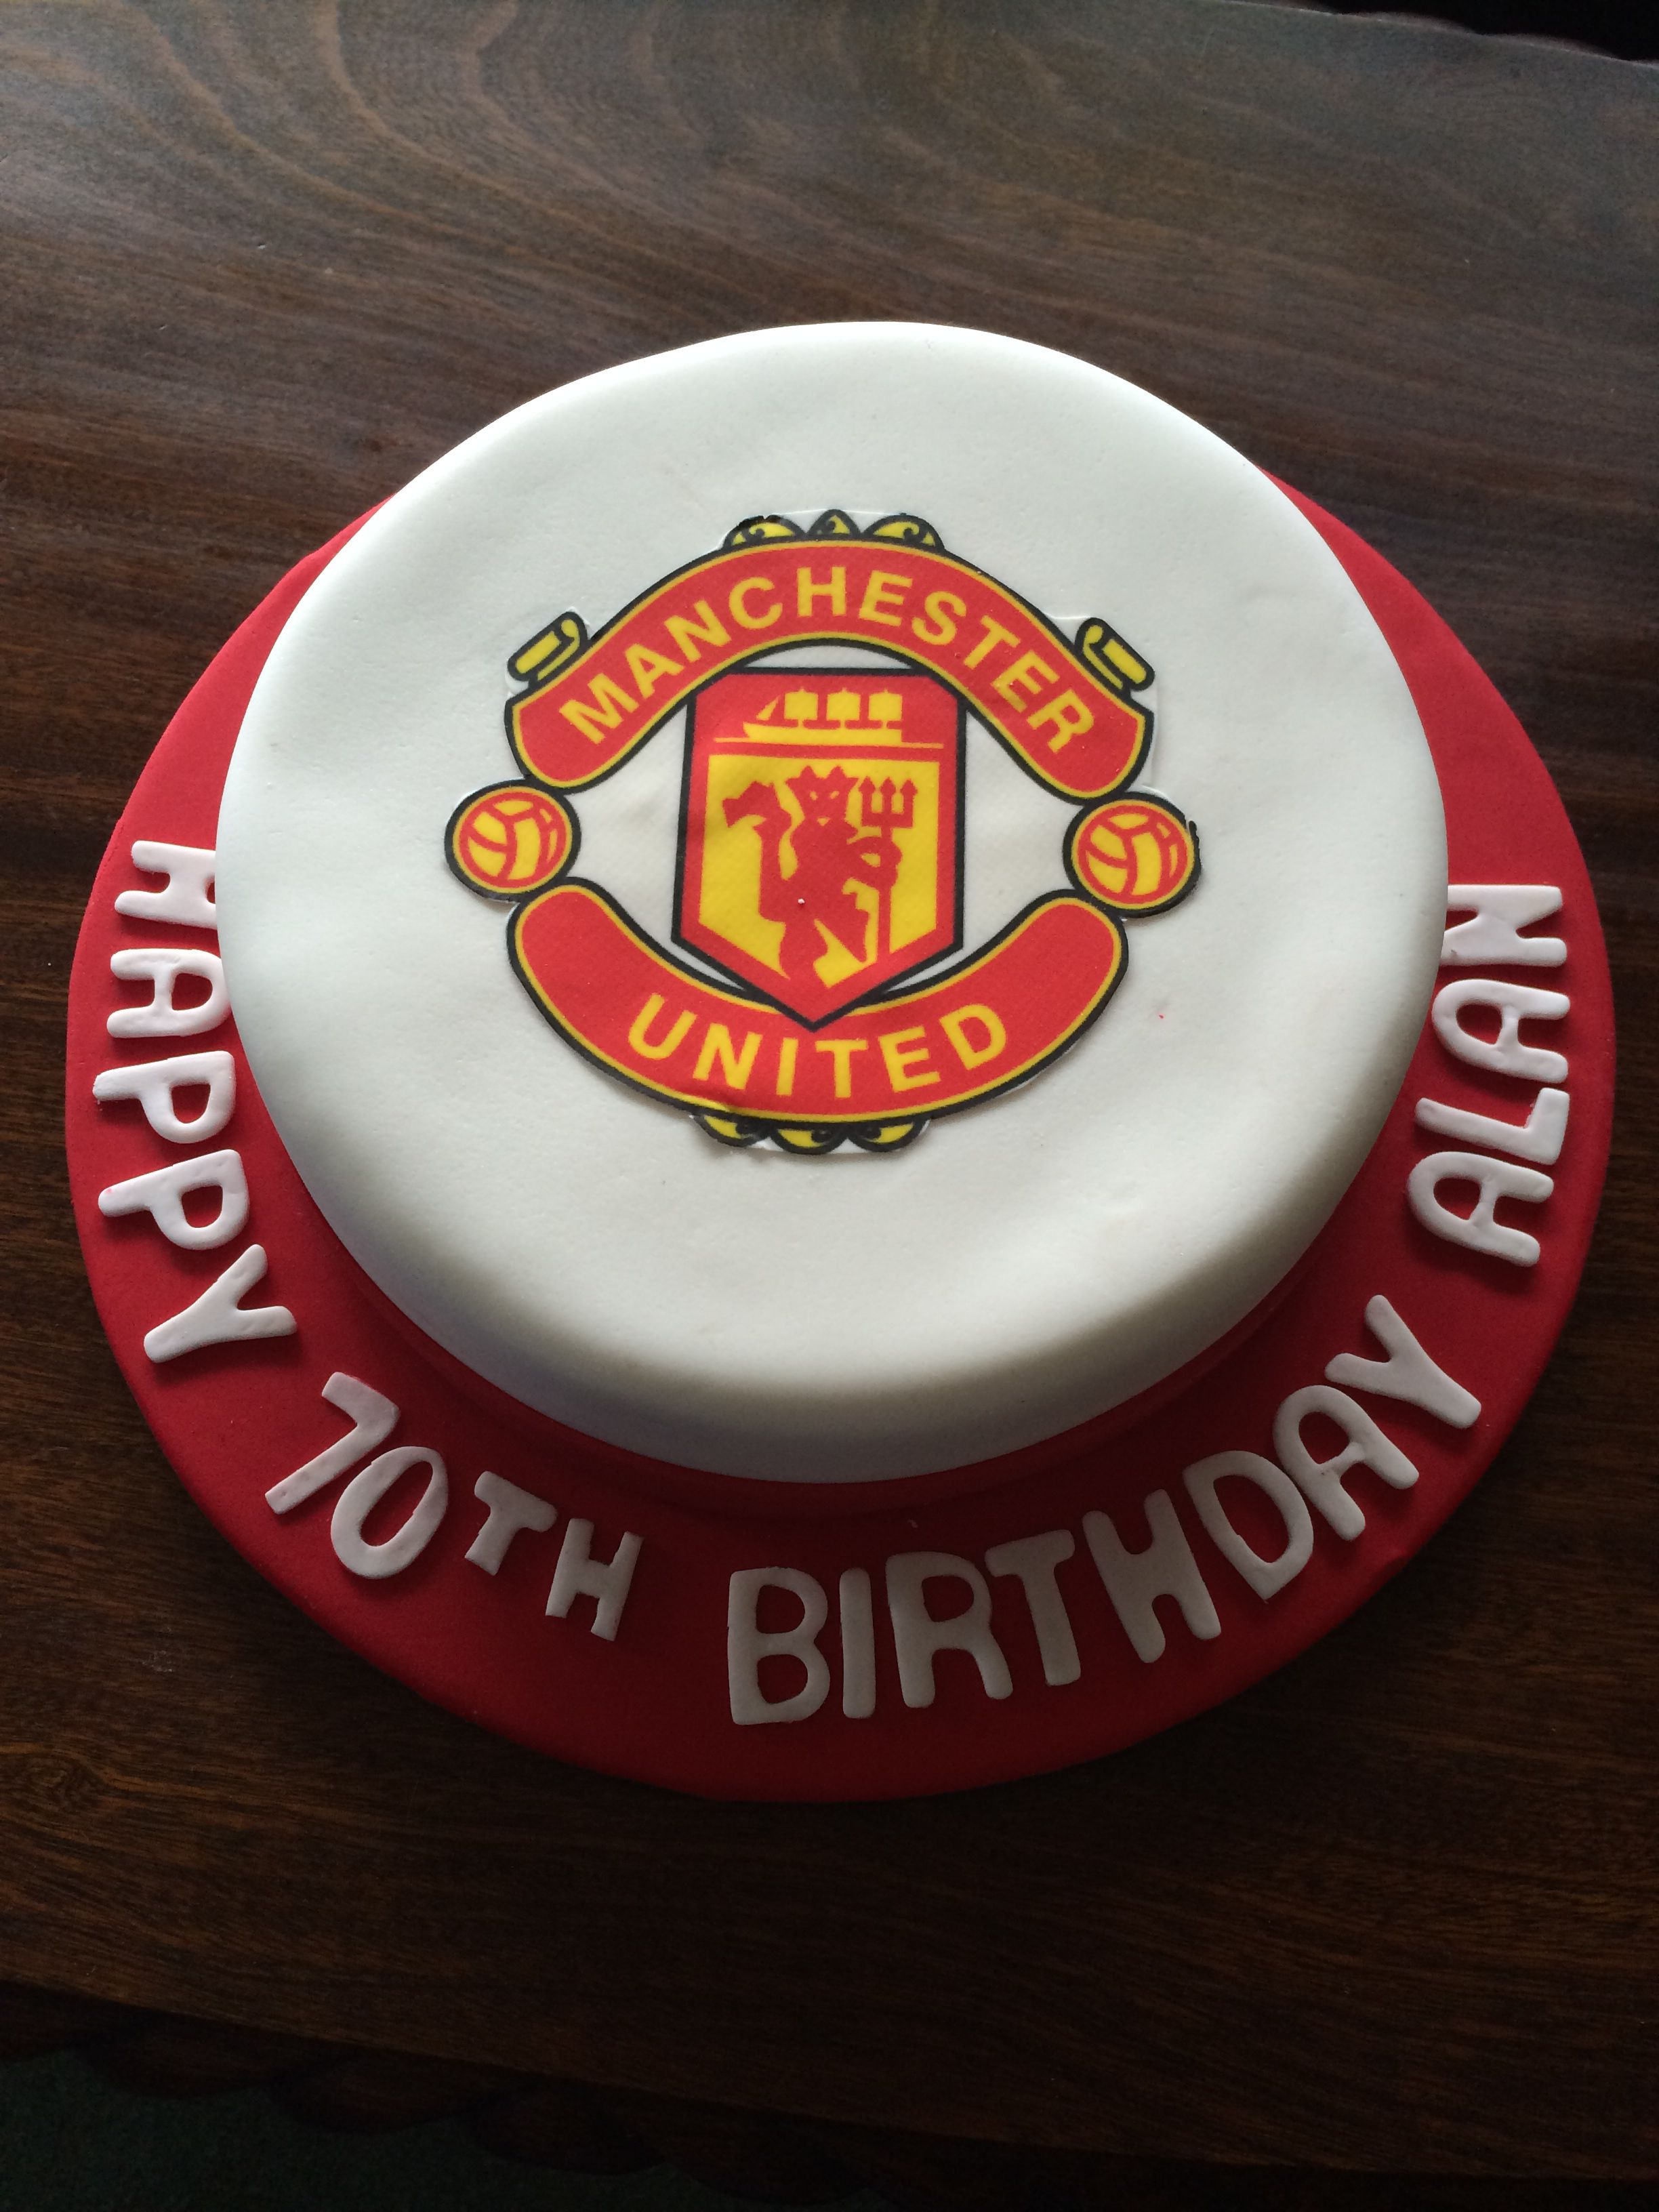 Manchester United Cake Birthday Sweets Cake Manchester United Cake